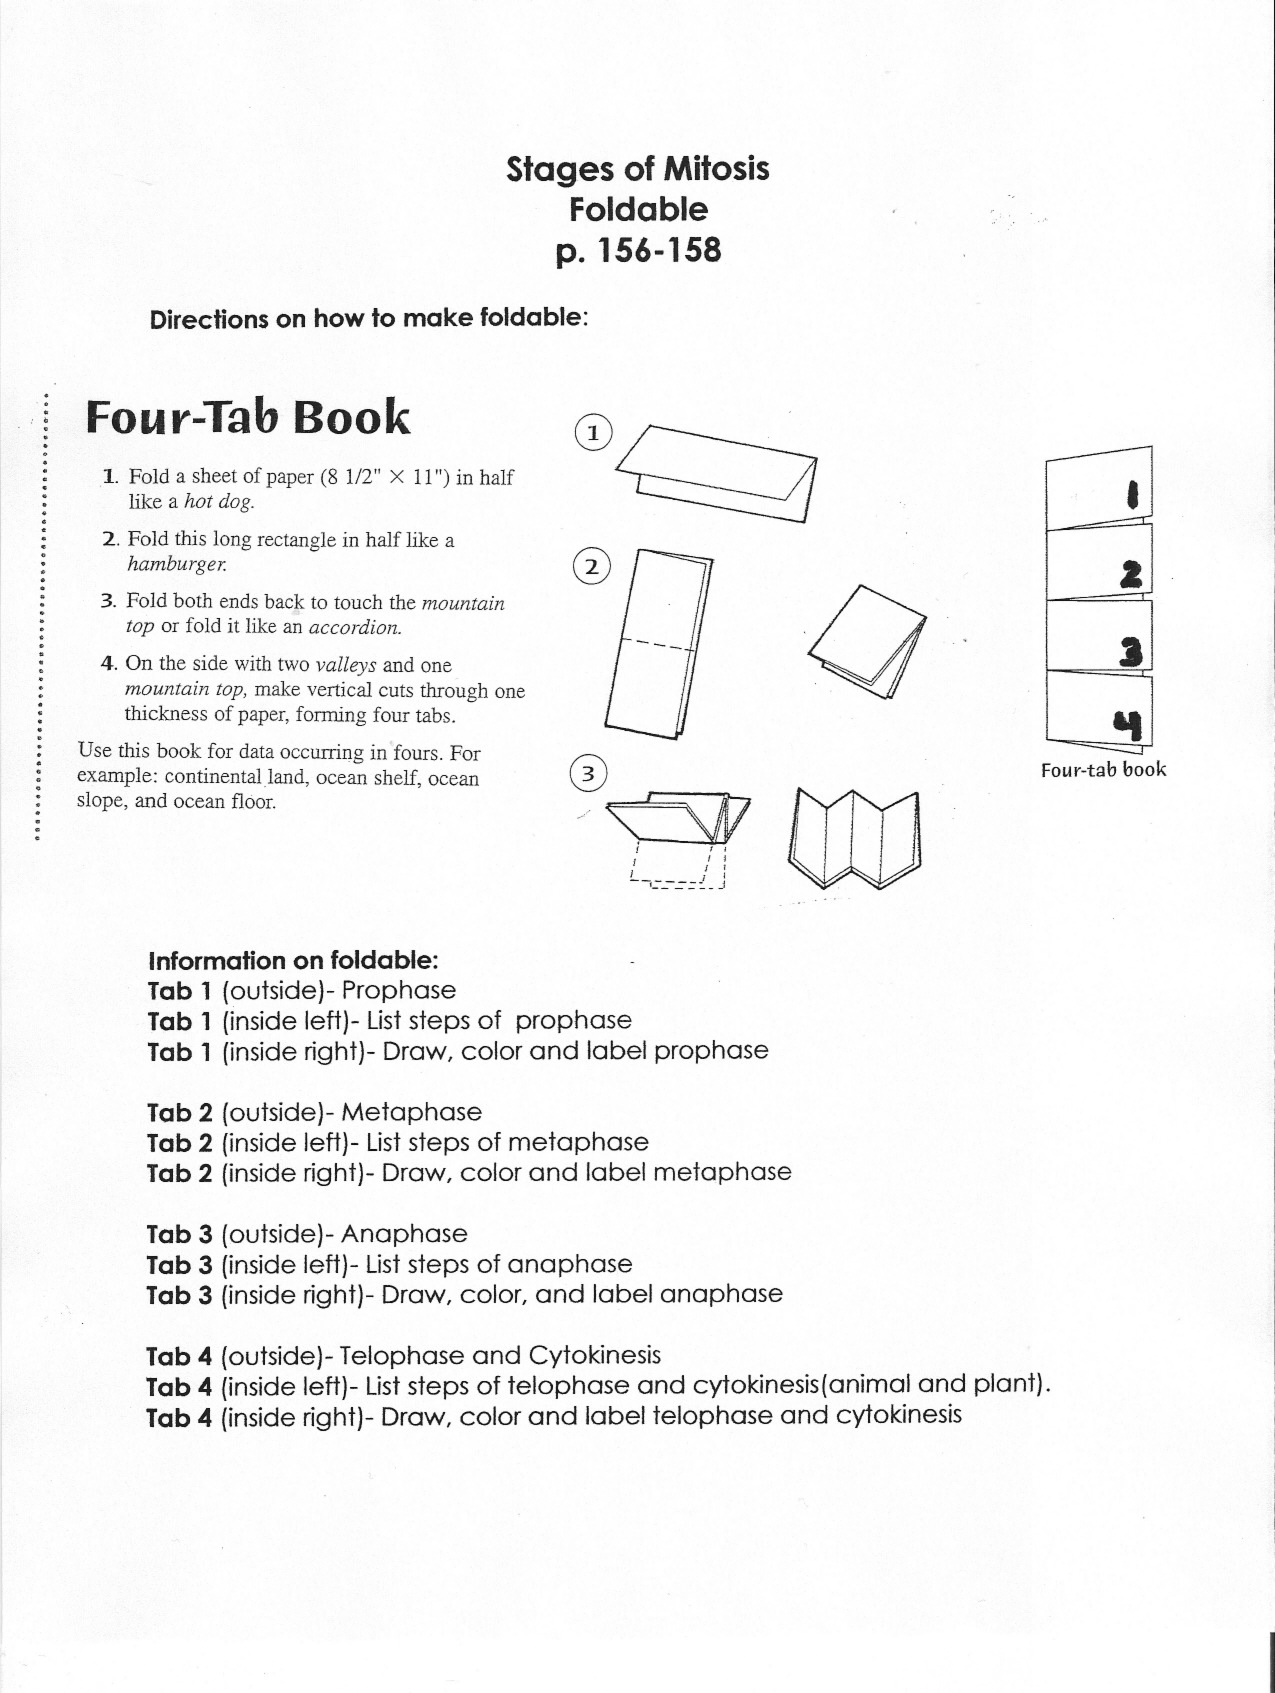 worksheet Meiosis Vocabulary Worksheet vocabulary foldable template stages of mitosis foldable